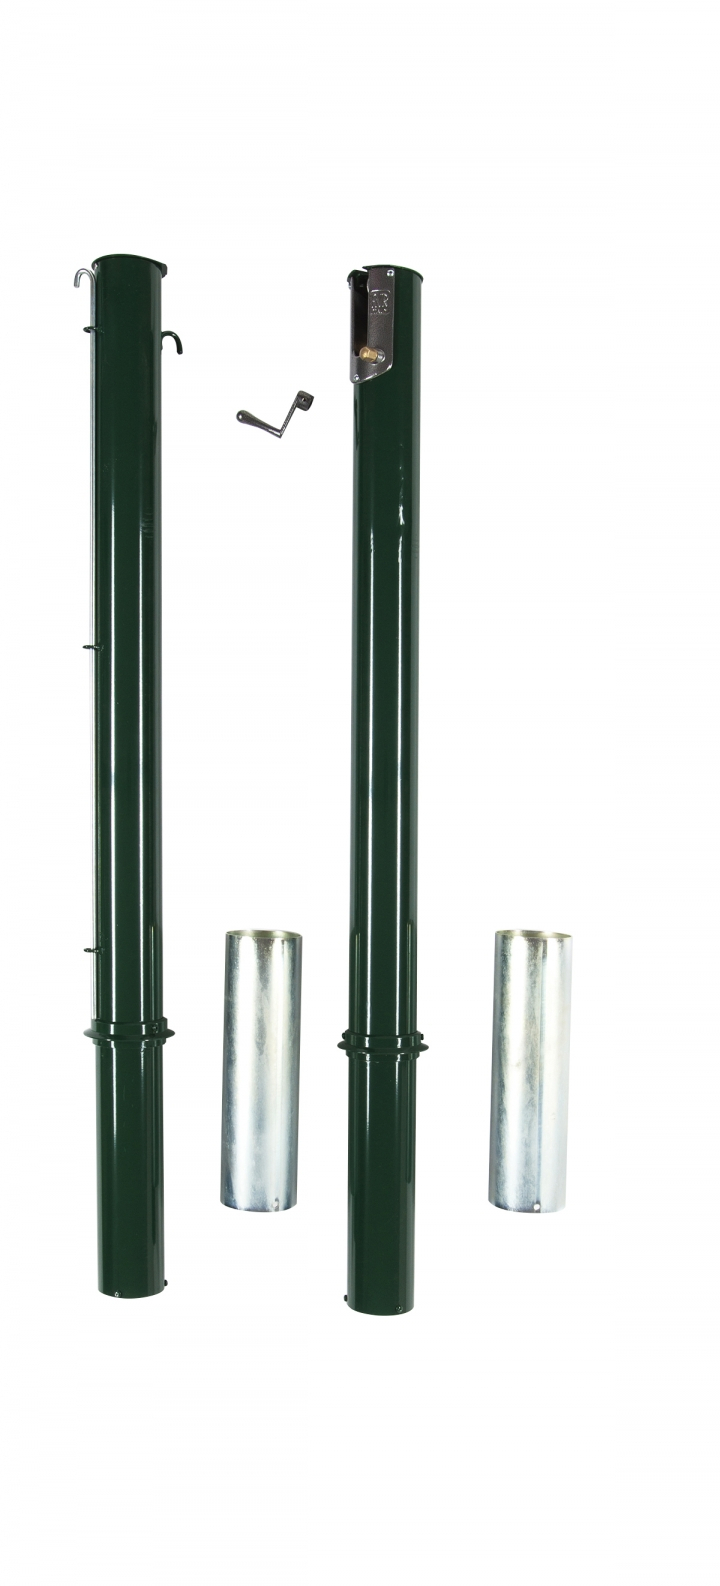 Round support posts for tennis nets